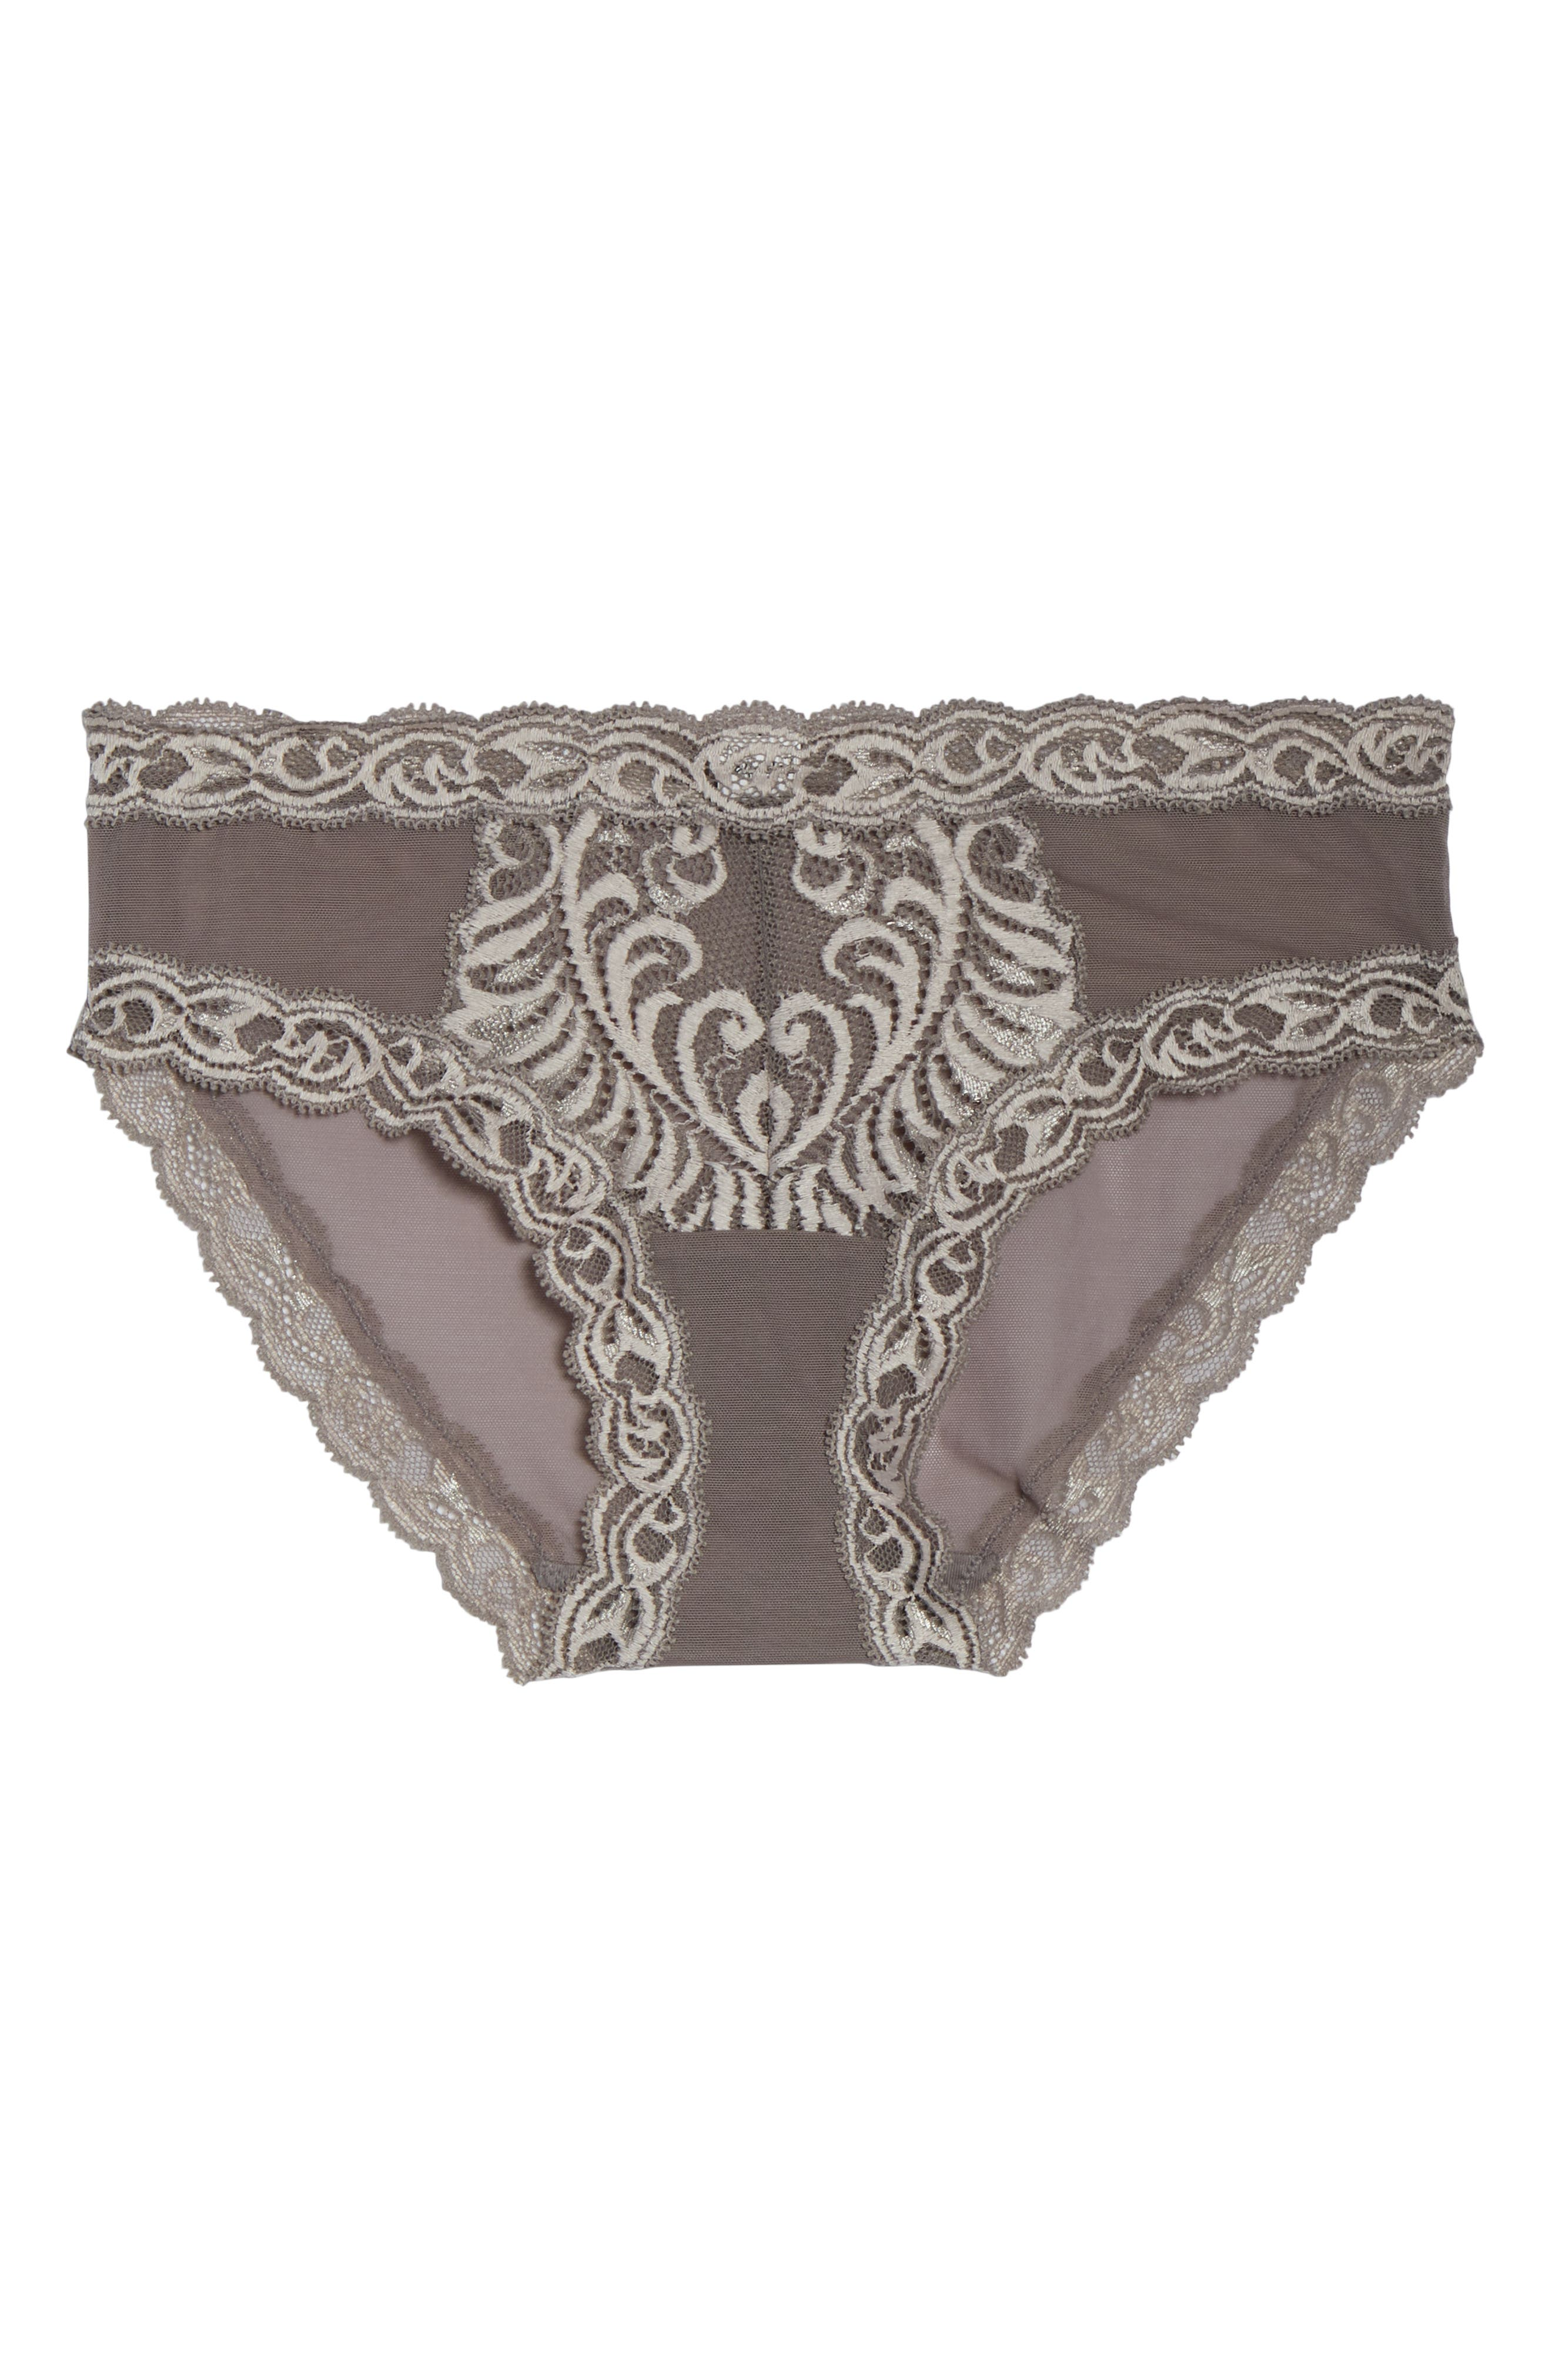 Feathers Hipster Briefs,                             Alternate thumbnail 473, color,